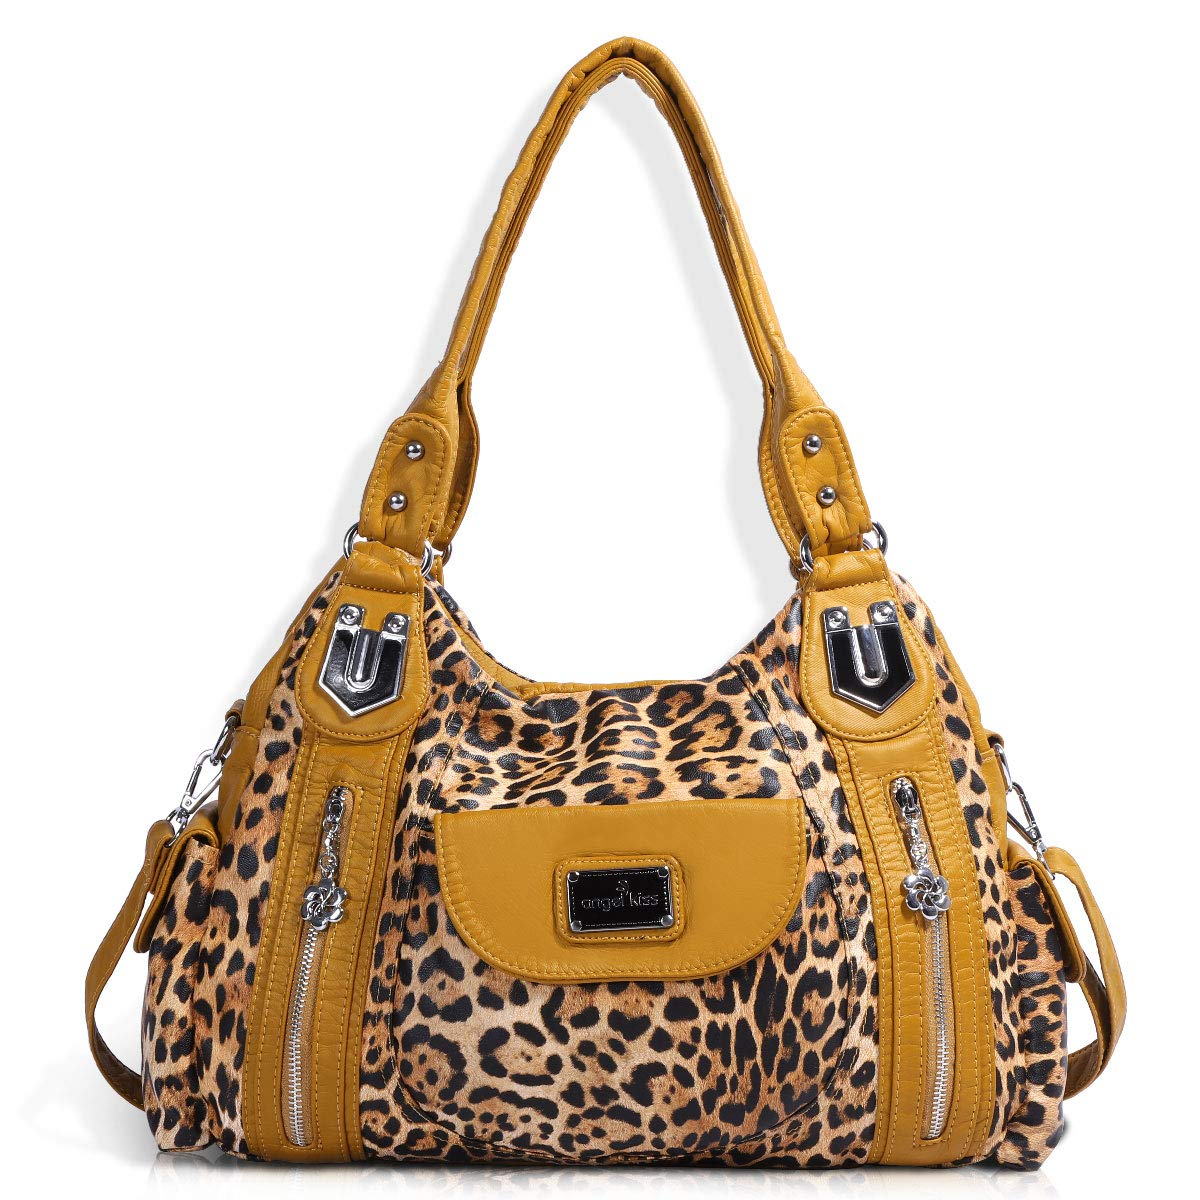 Handbag Hobo Women Handbag Roomy Multiple Pockets Street ladies' Shoulder Bag Fashion PU Tote Satchel Bag for Women (AK812-2Z Yellow Leopard)